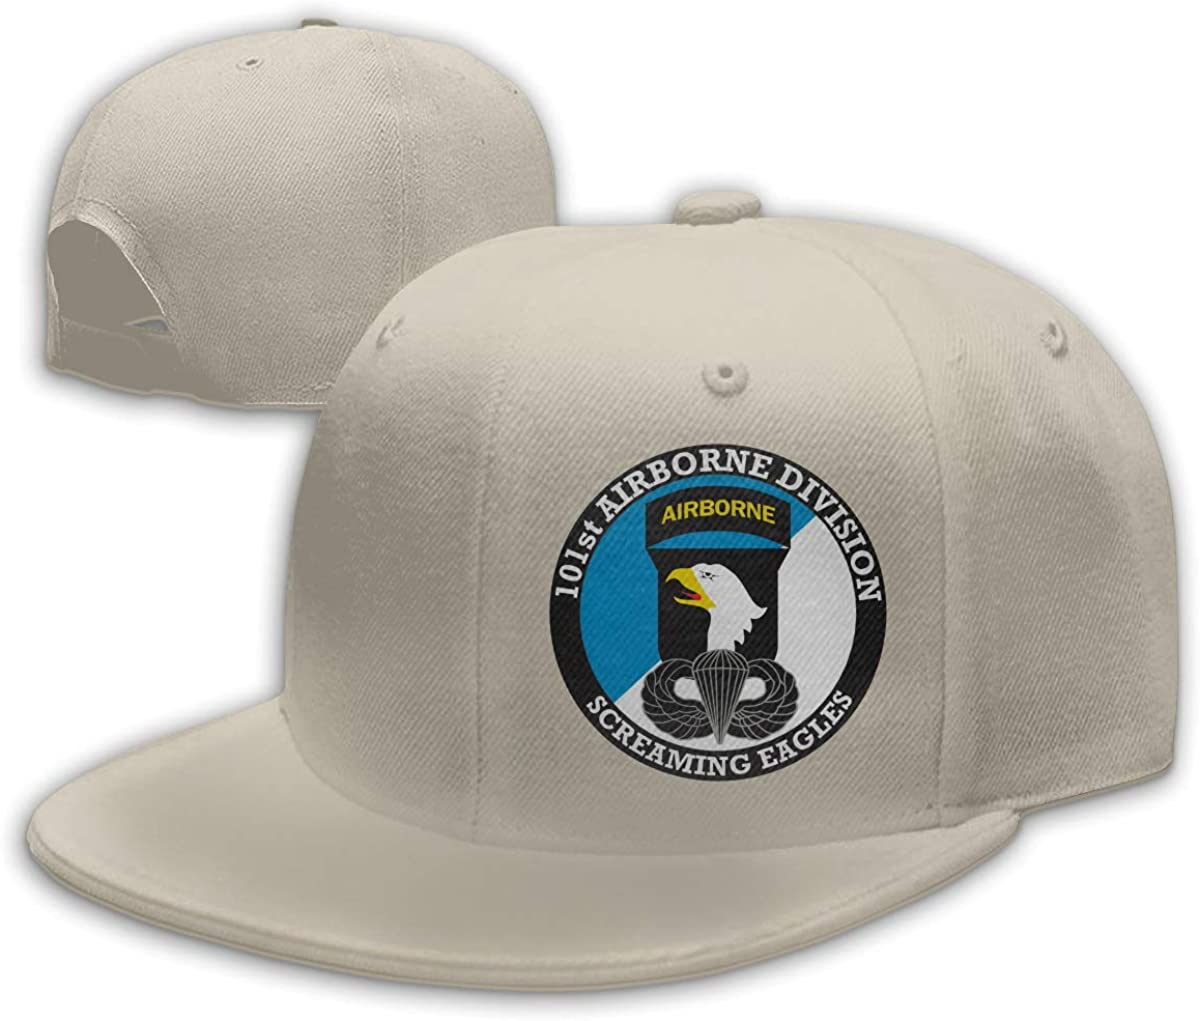 Xindianpucsk 101st Airborne Division Baseball Cap Fashion Hat